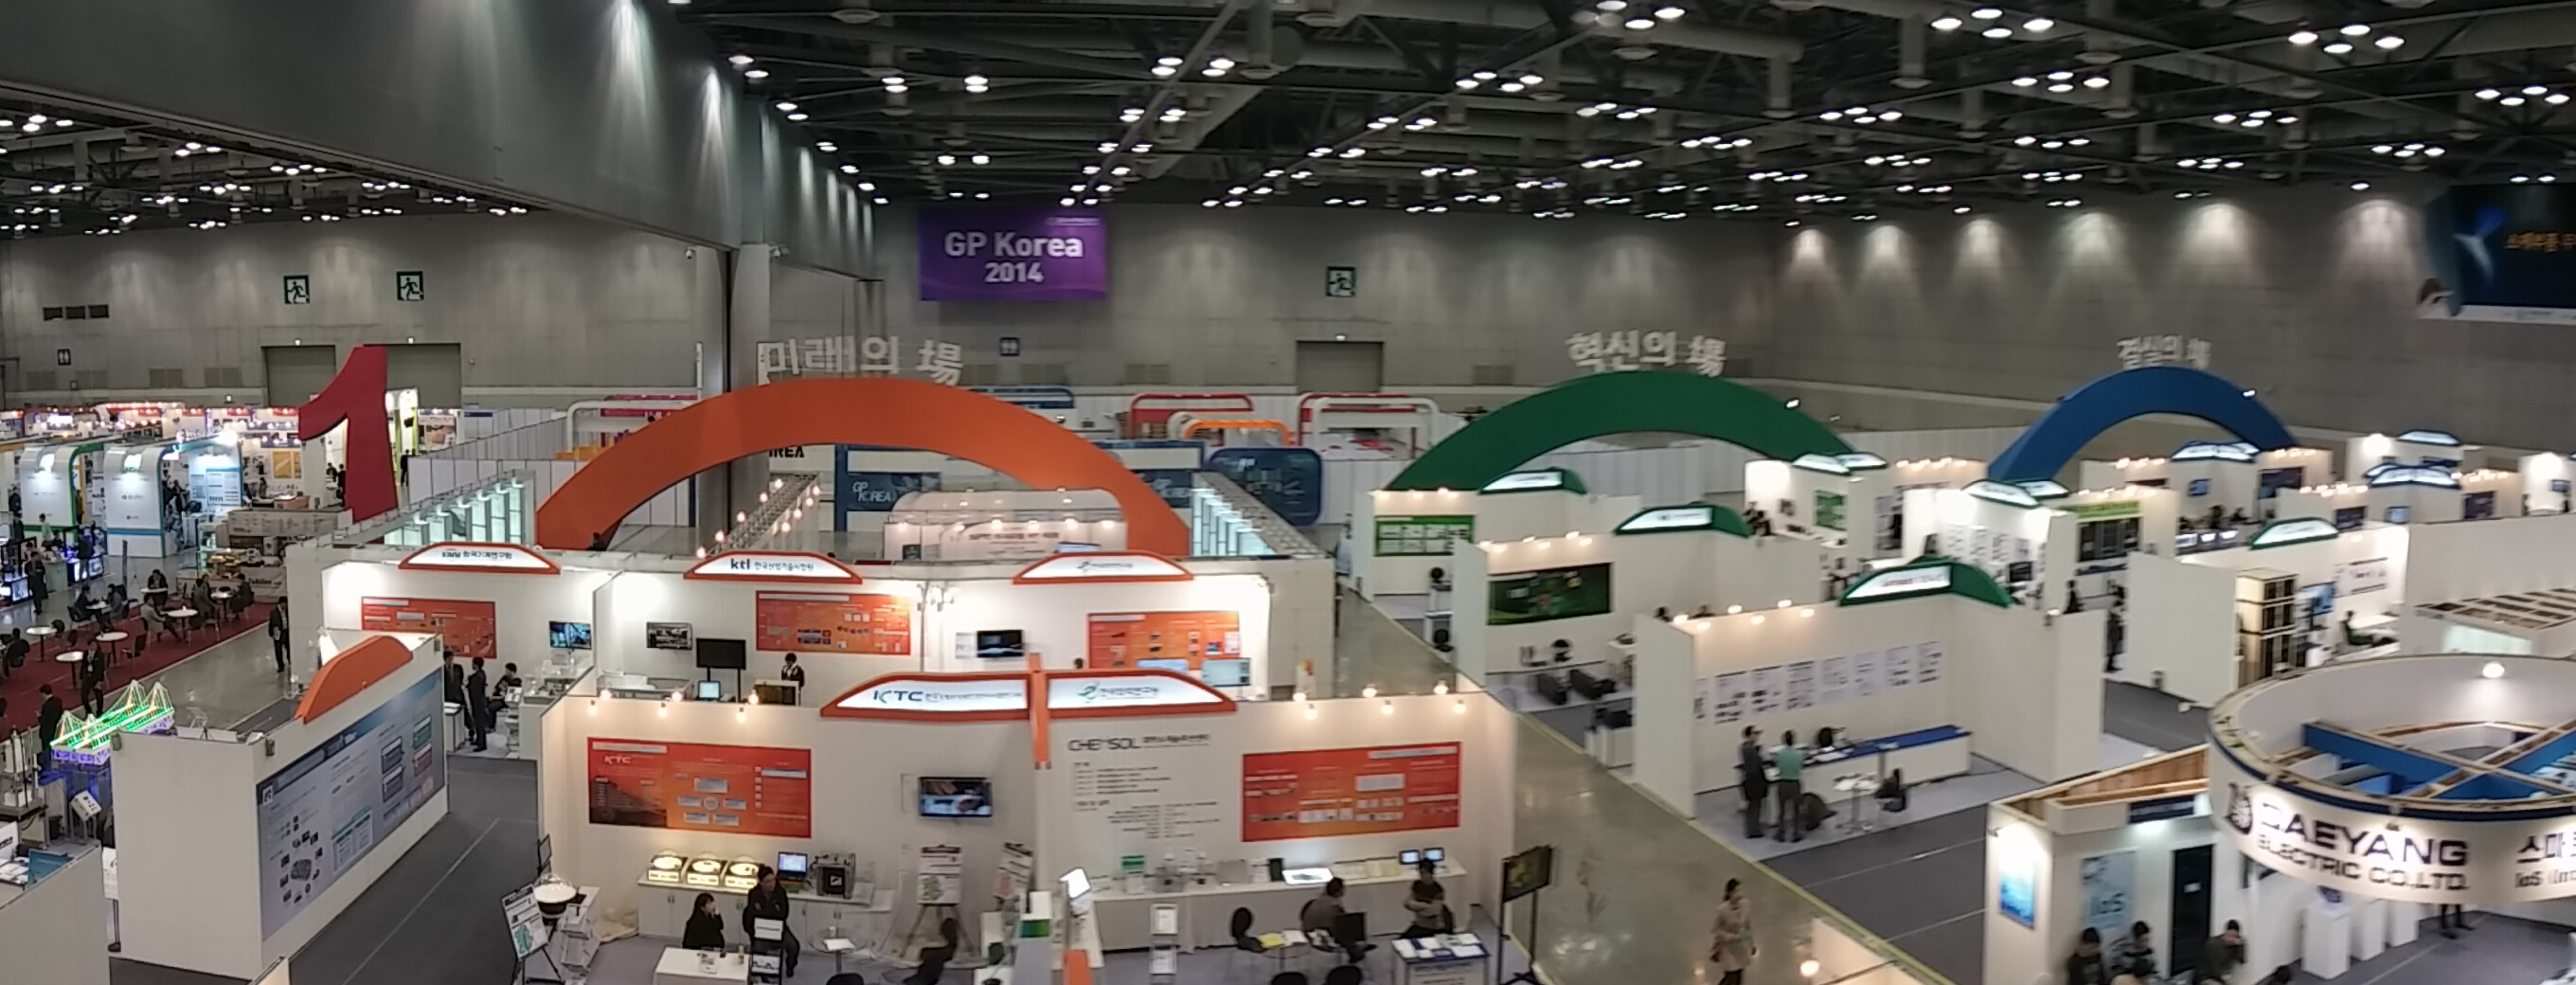 A view of the exhibition floor of the 2014 Korea Materials & Components Week.